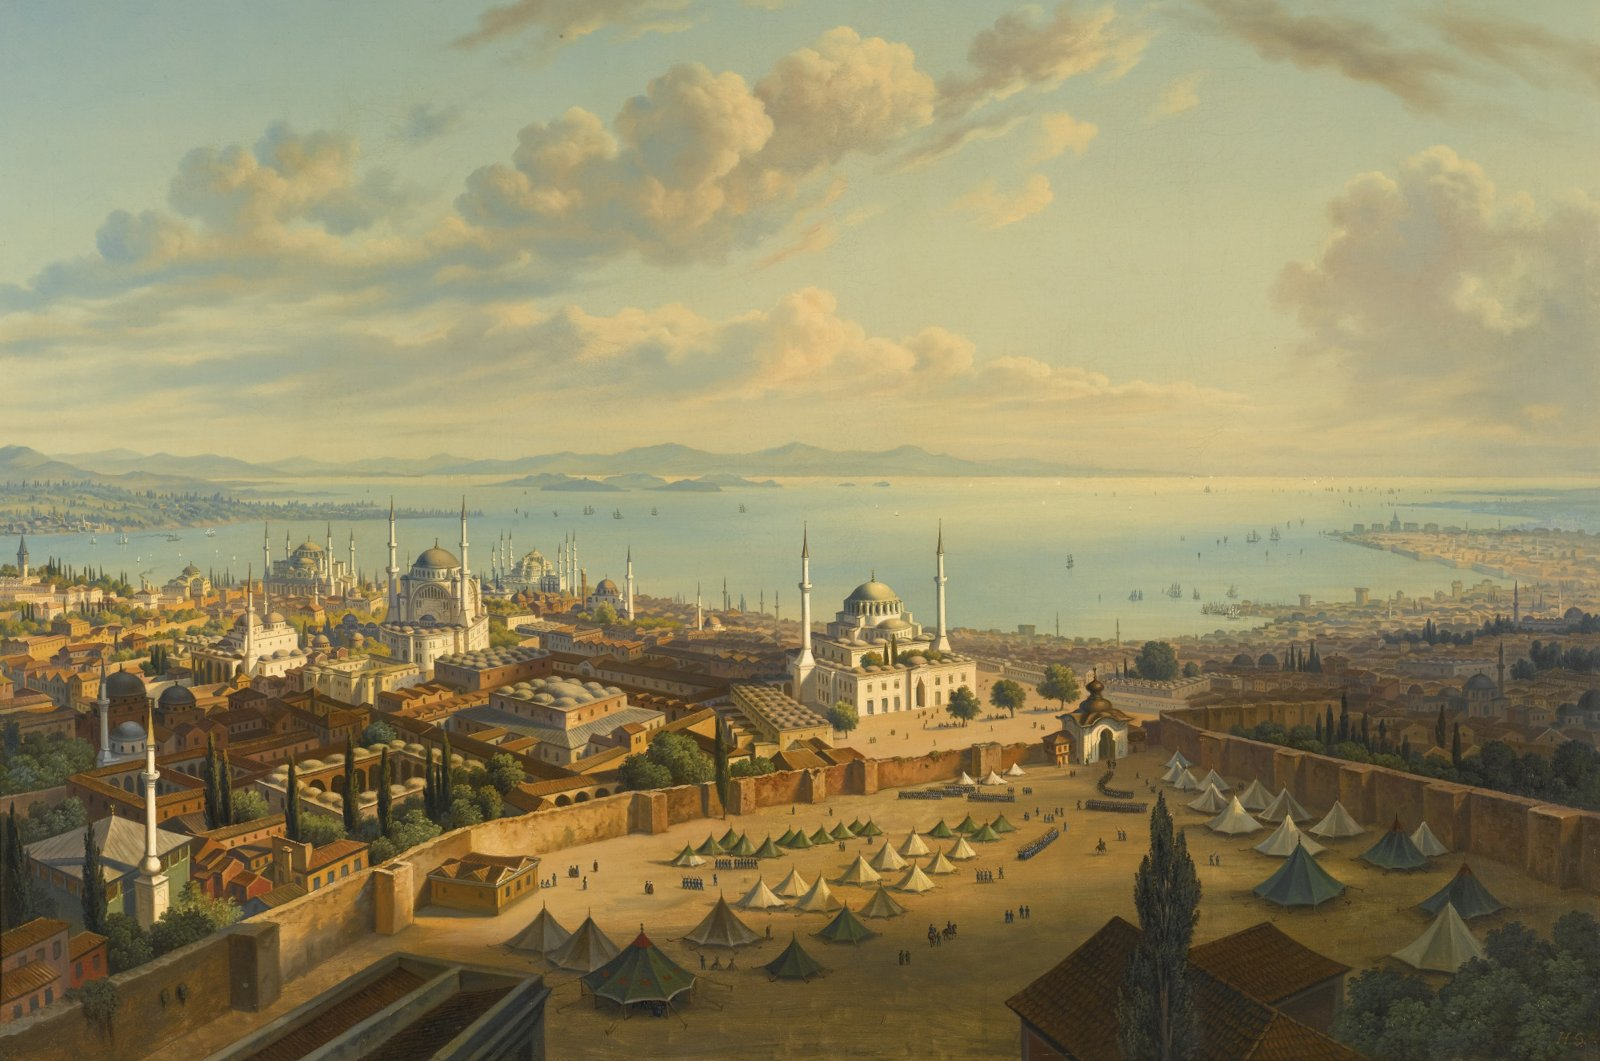 A painting by Hubert Sattler depicts the Beyazıt Square when a part of the Old Palace was allocated to military authorities. (Getty Images)